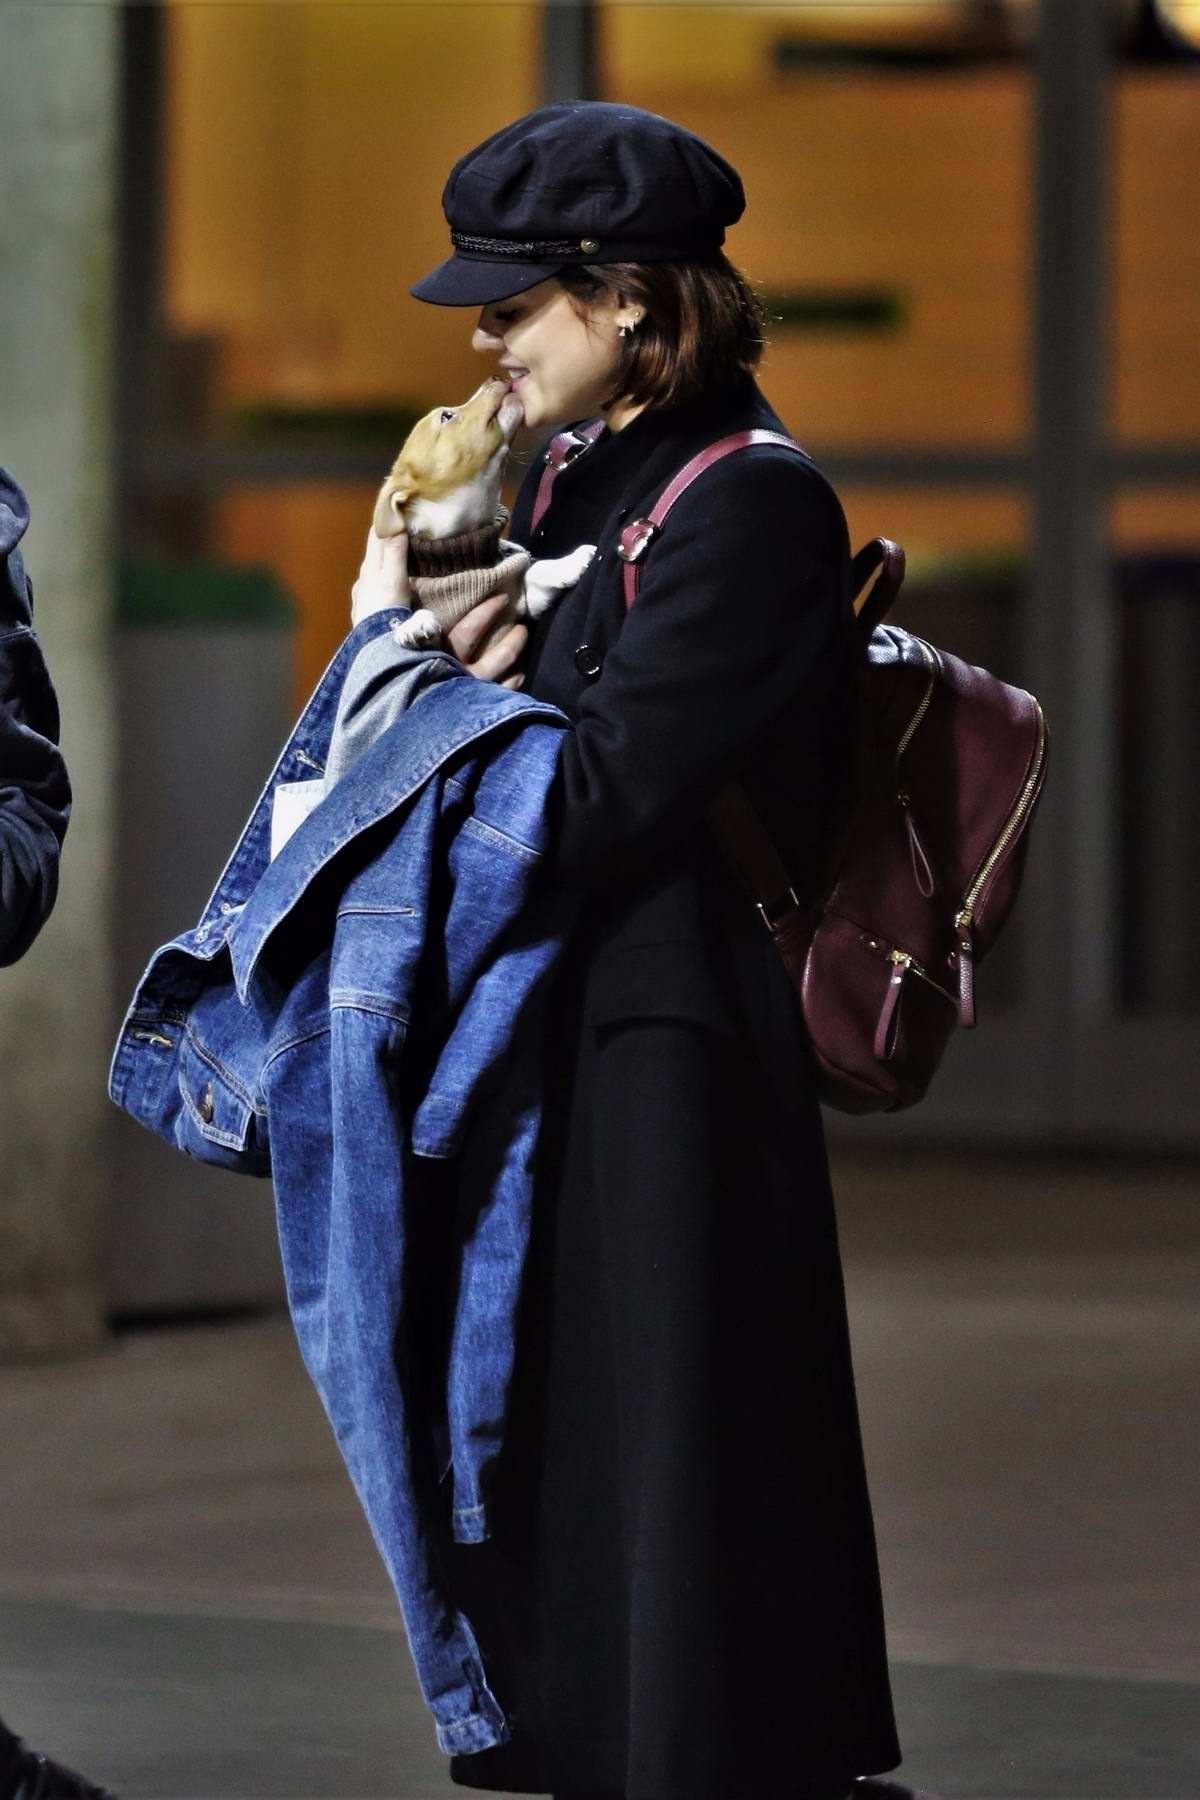 Lucy Hale let her new puppy out of airline carrier at the airport in Vancouver, Canada